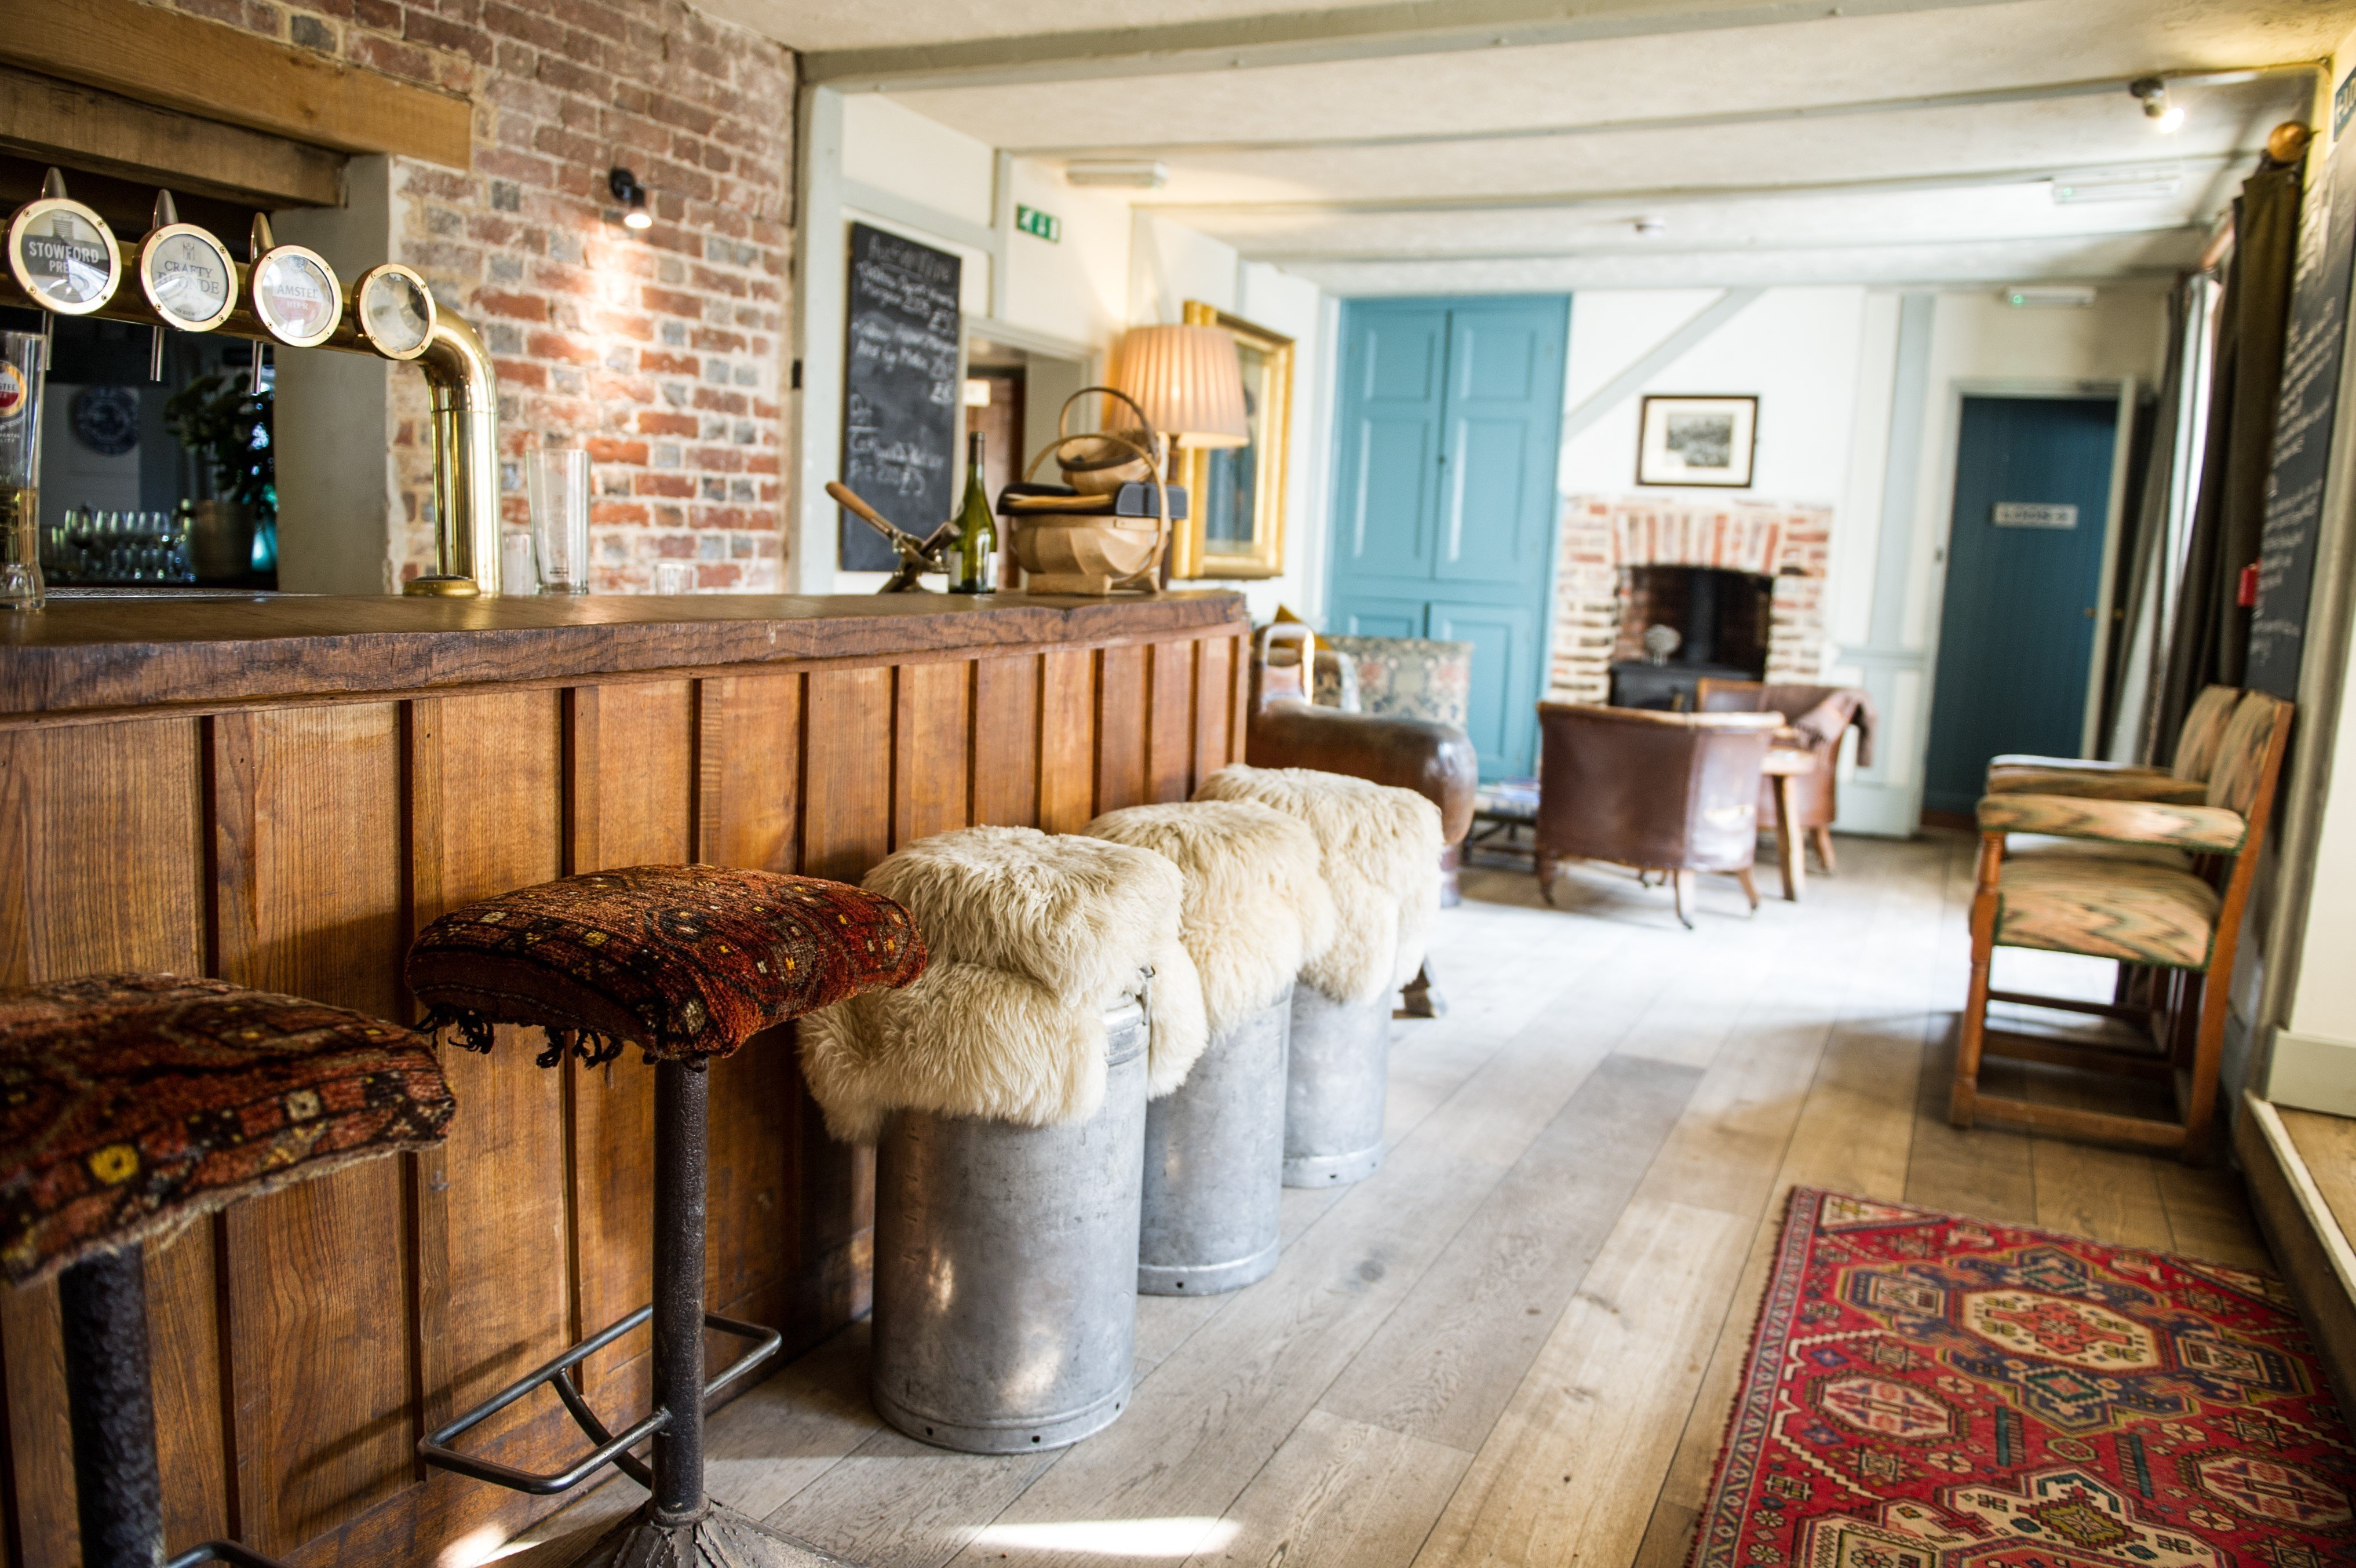 The Lamb Inn Bar